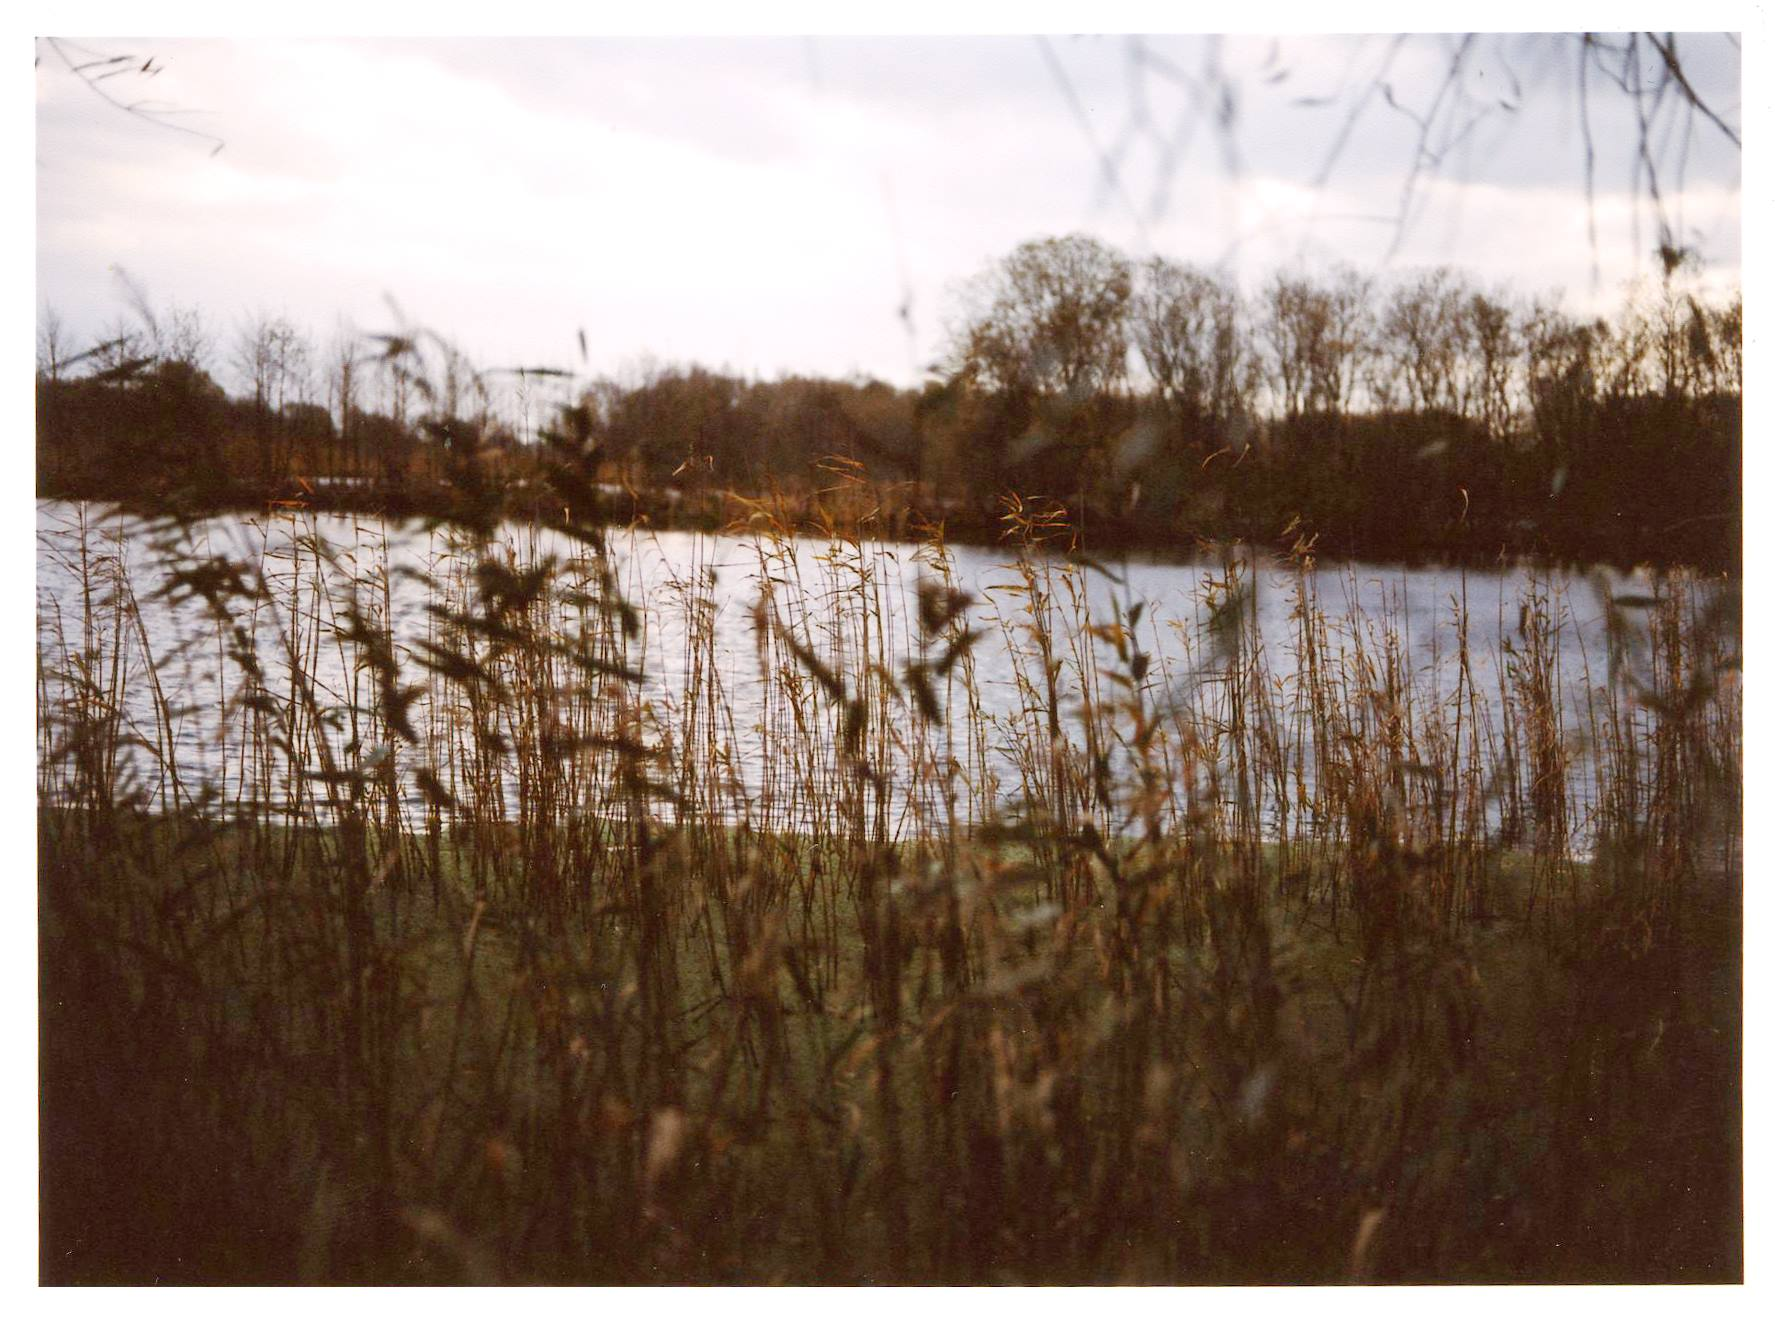 Reeds and mere at Westhay Moor. Photo by Clare Twomey.